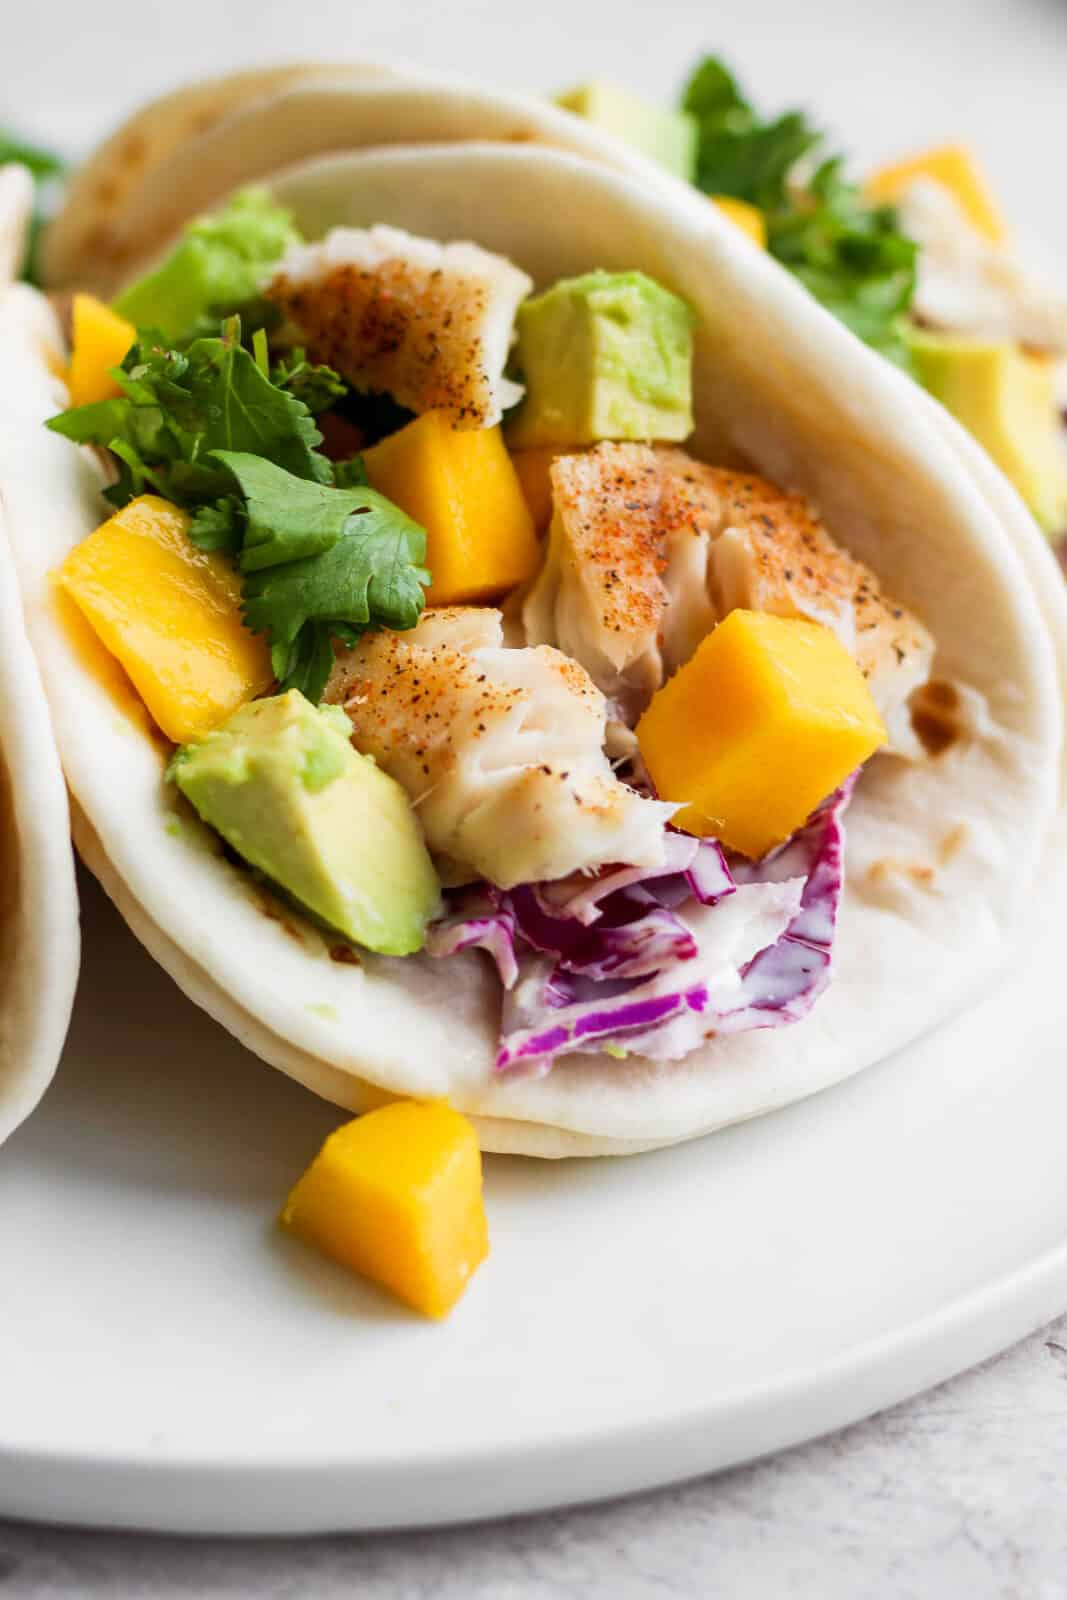 A tilapia fish taco with mango and avocado on a white plate.